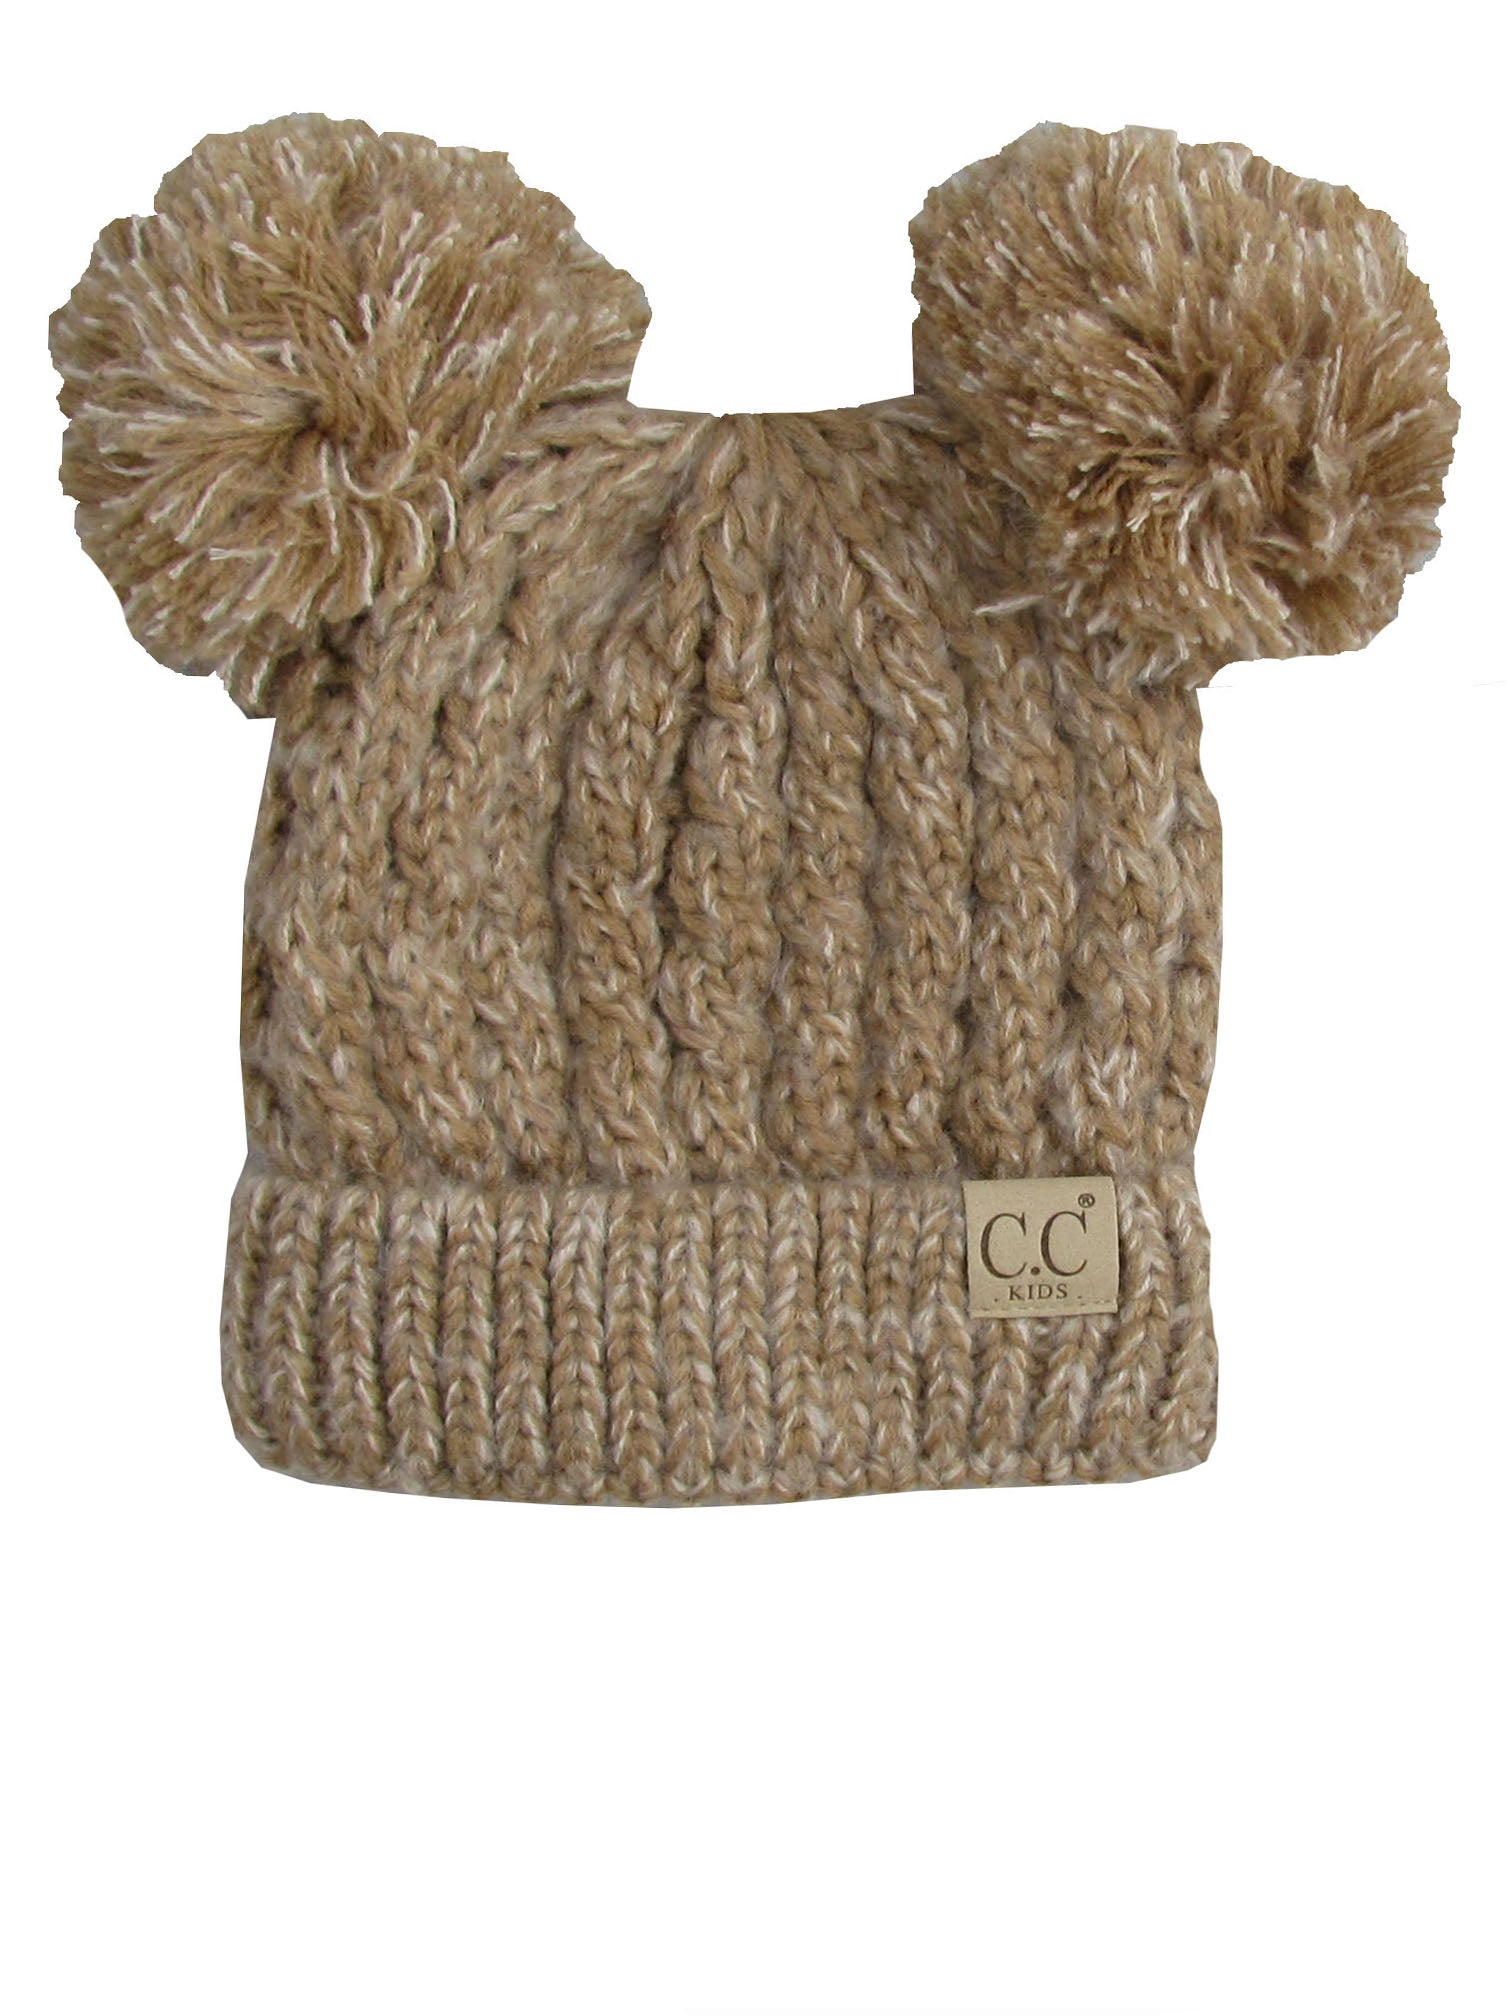 C.C Kid-23 Taupe Youth Beanie